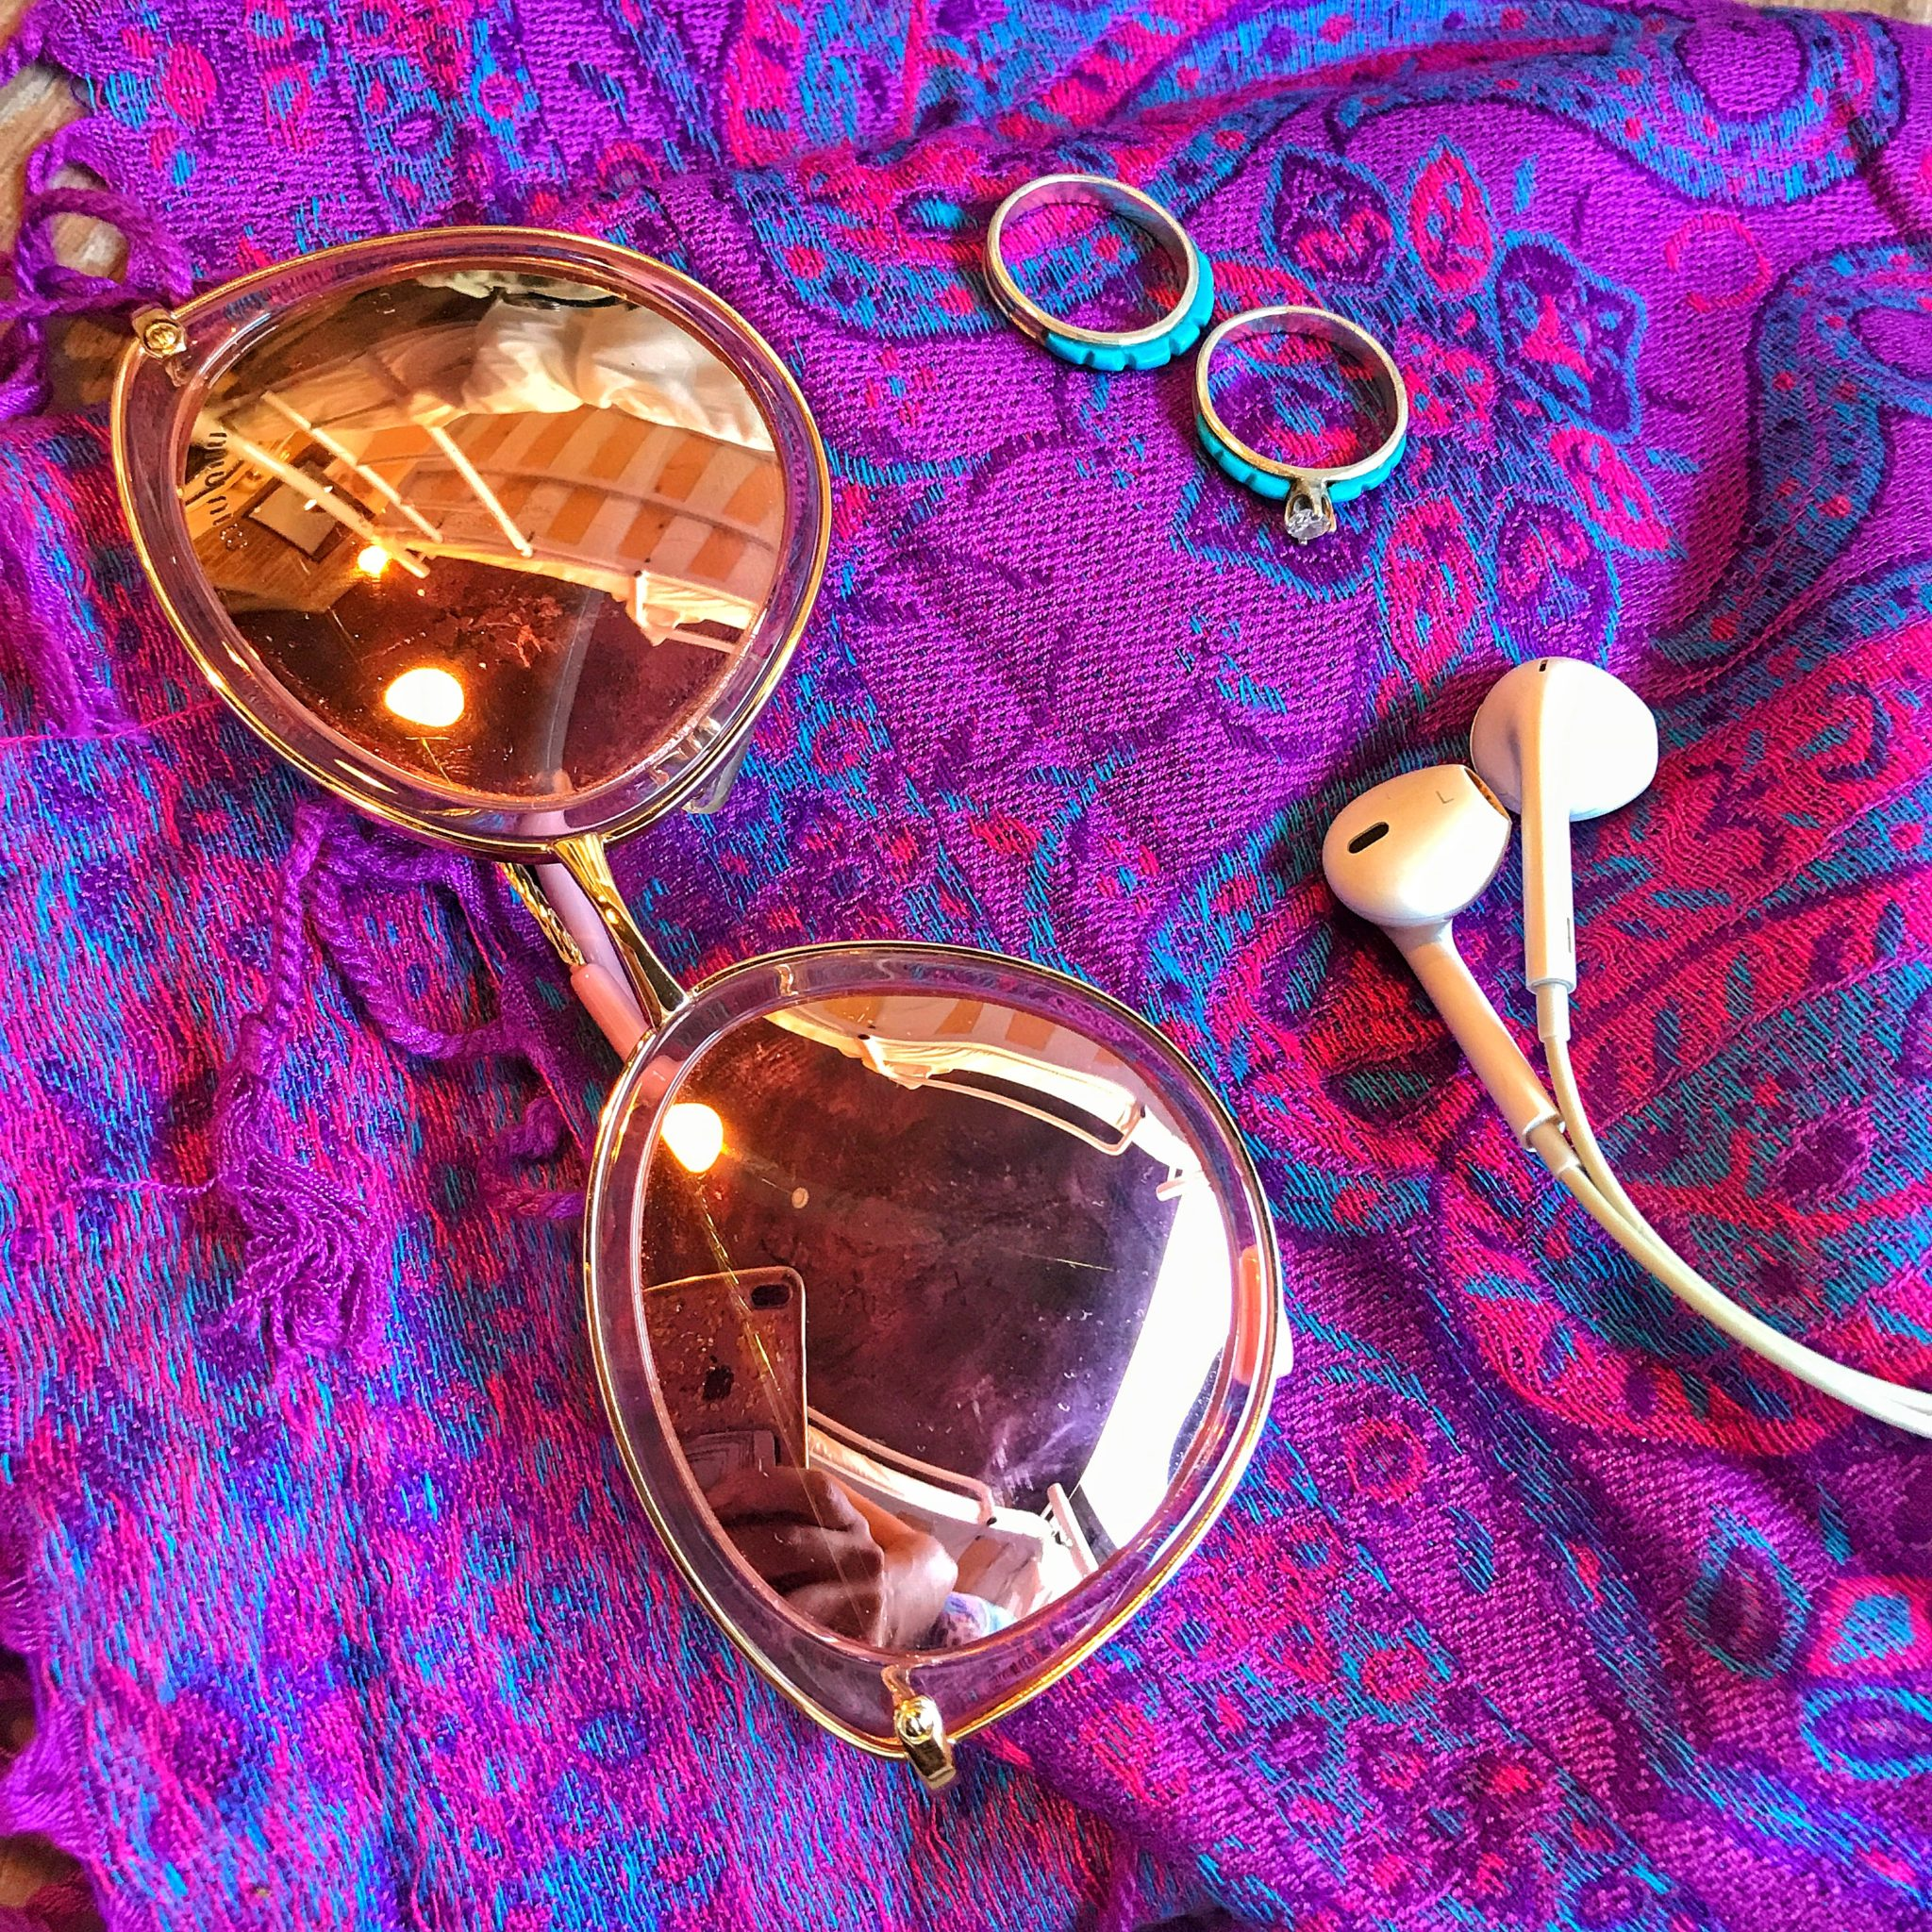 Sunglasses and earbuds